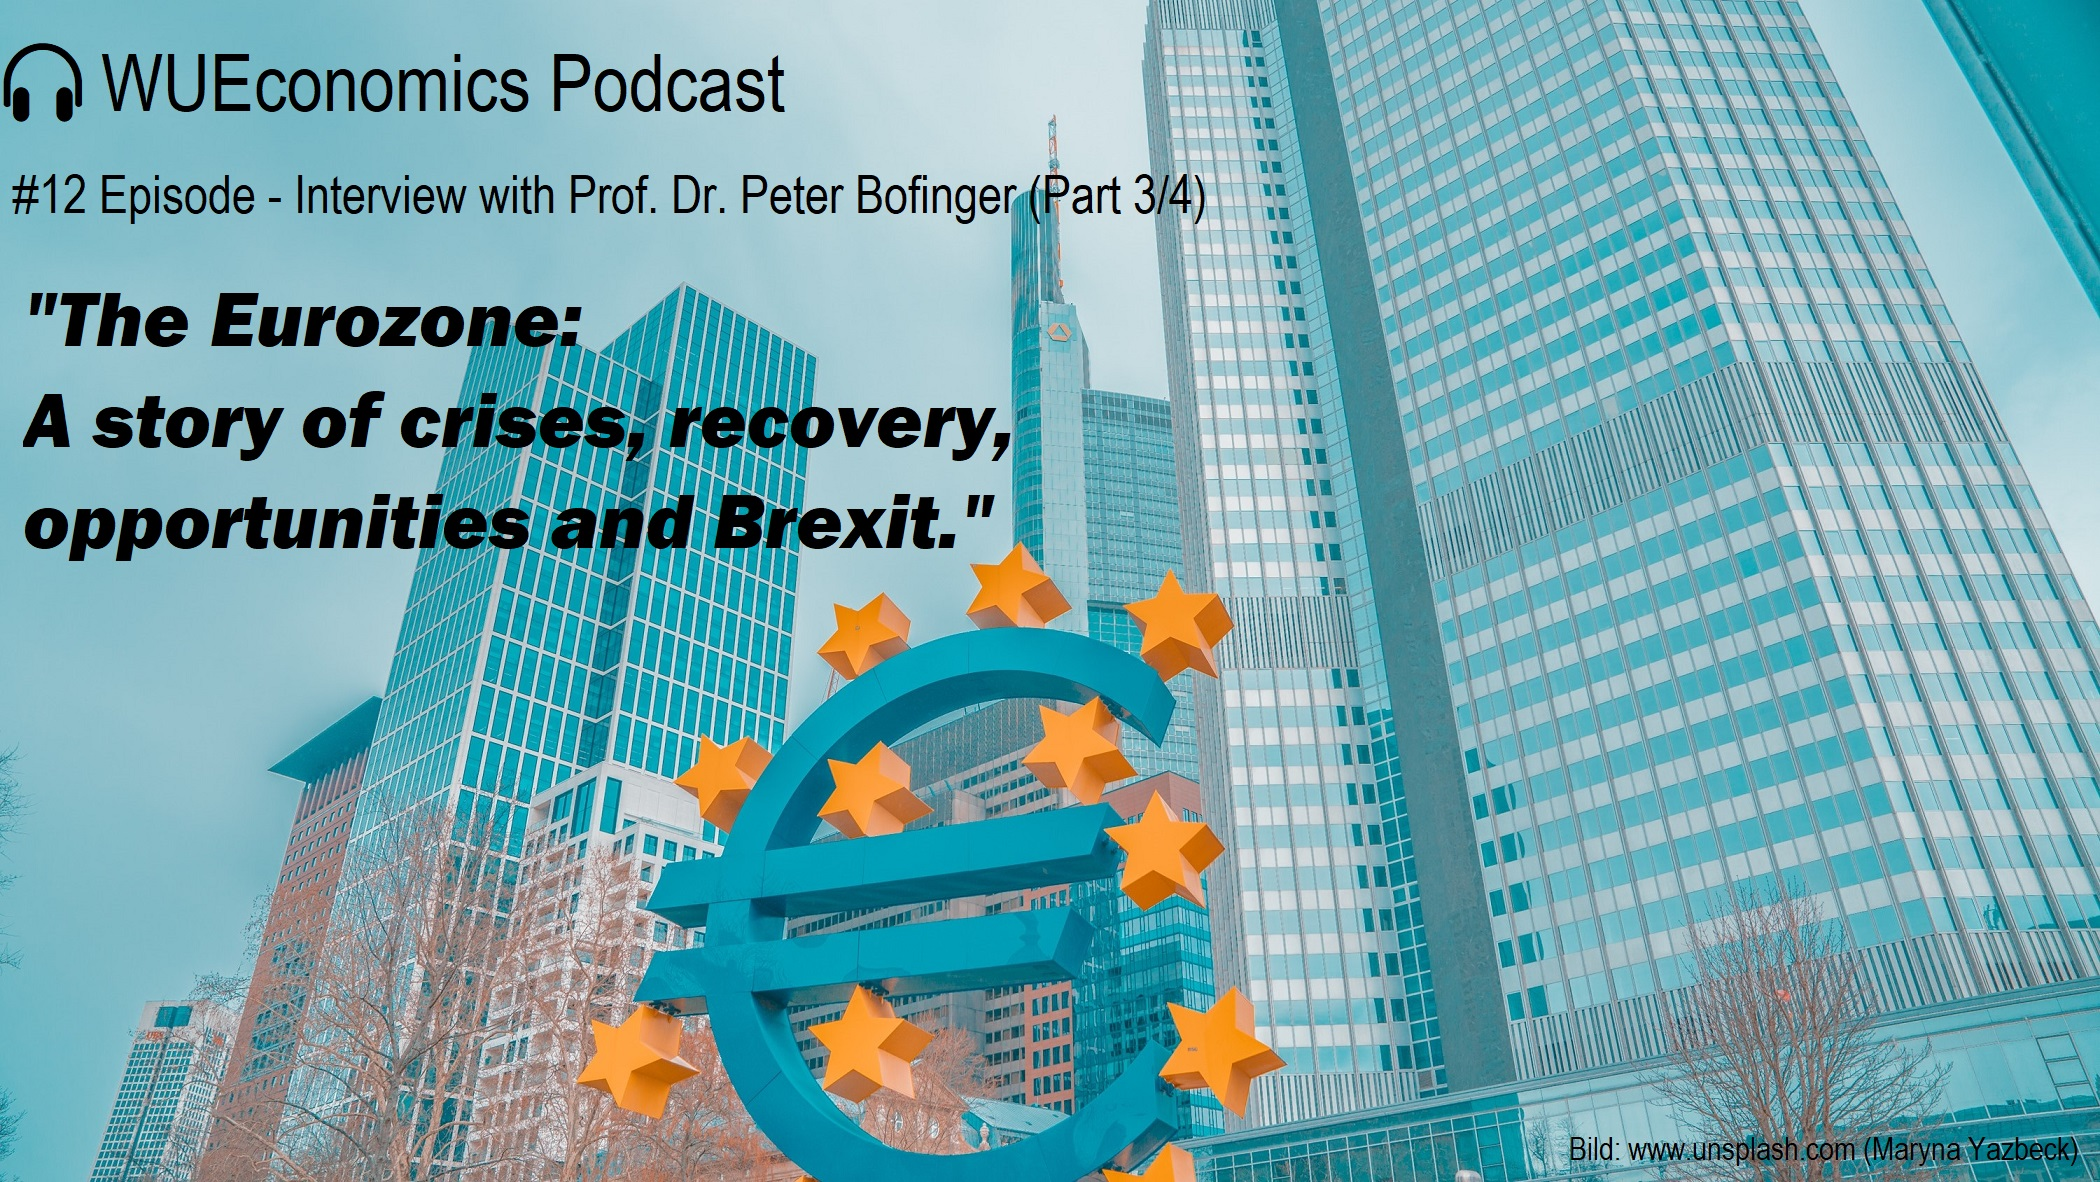 #12 Episode – The Eurozone: A story of crises, recovery, opportunities and Brexit